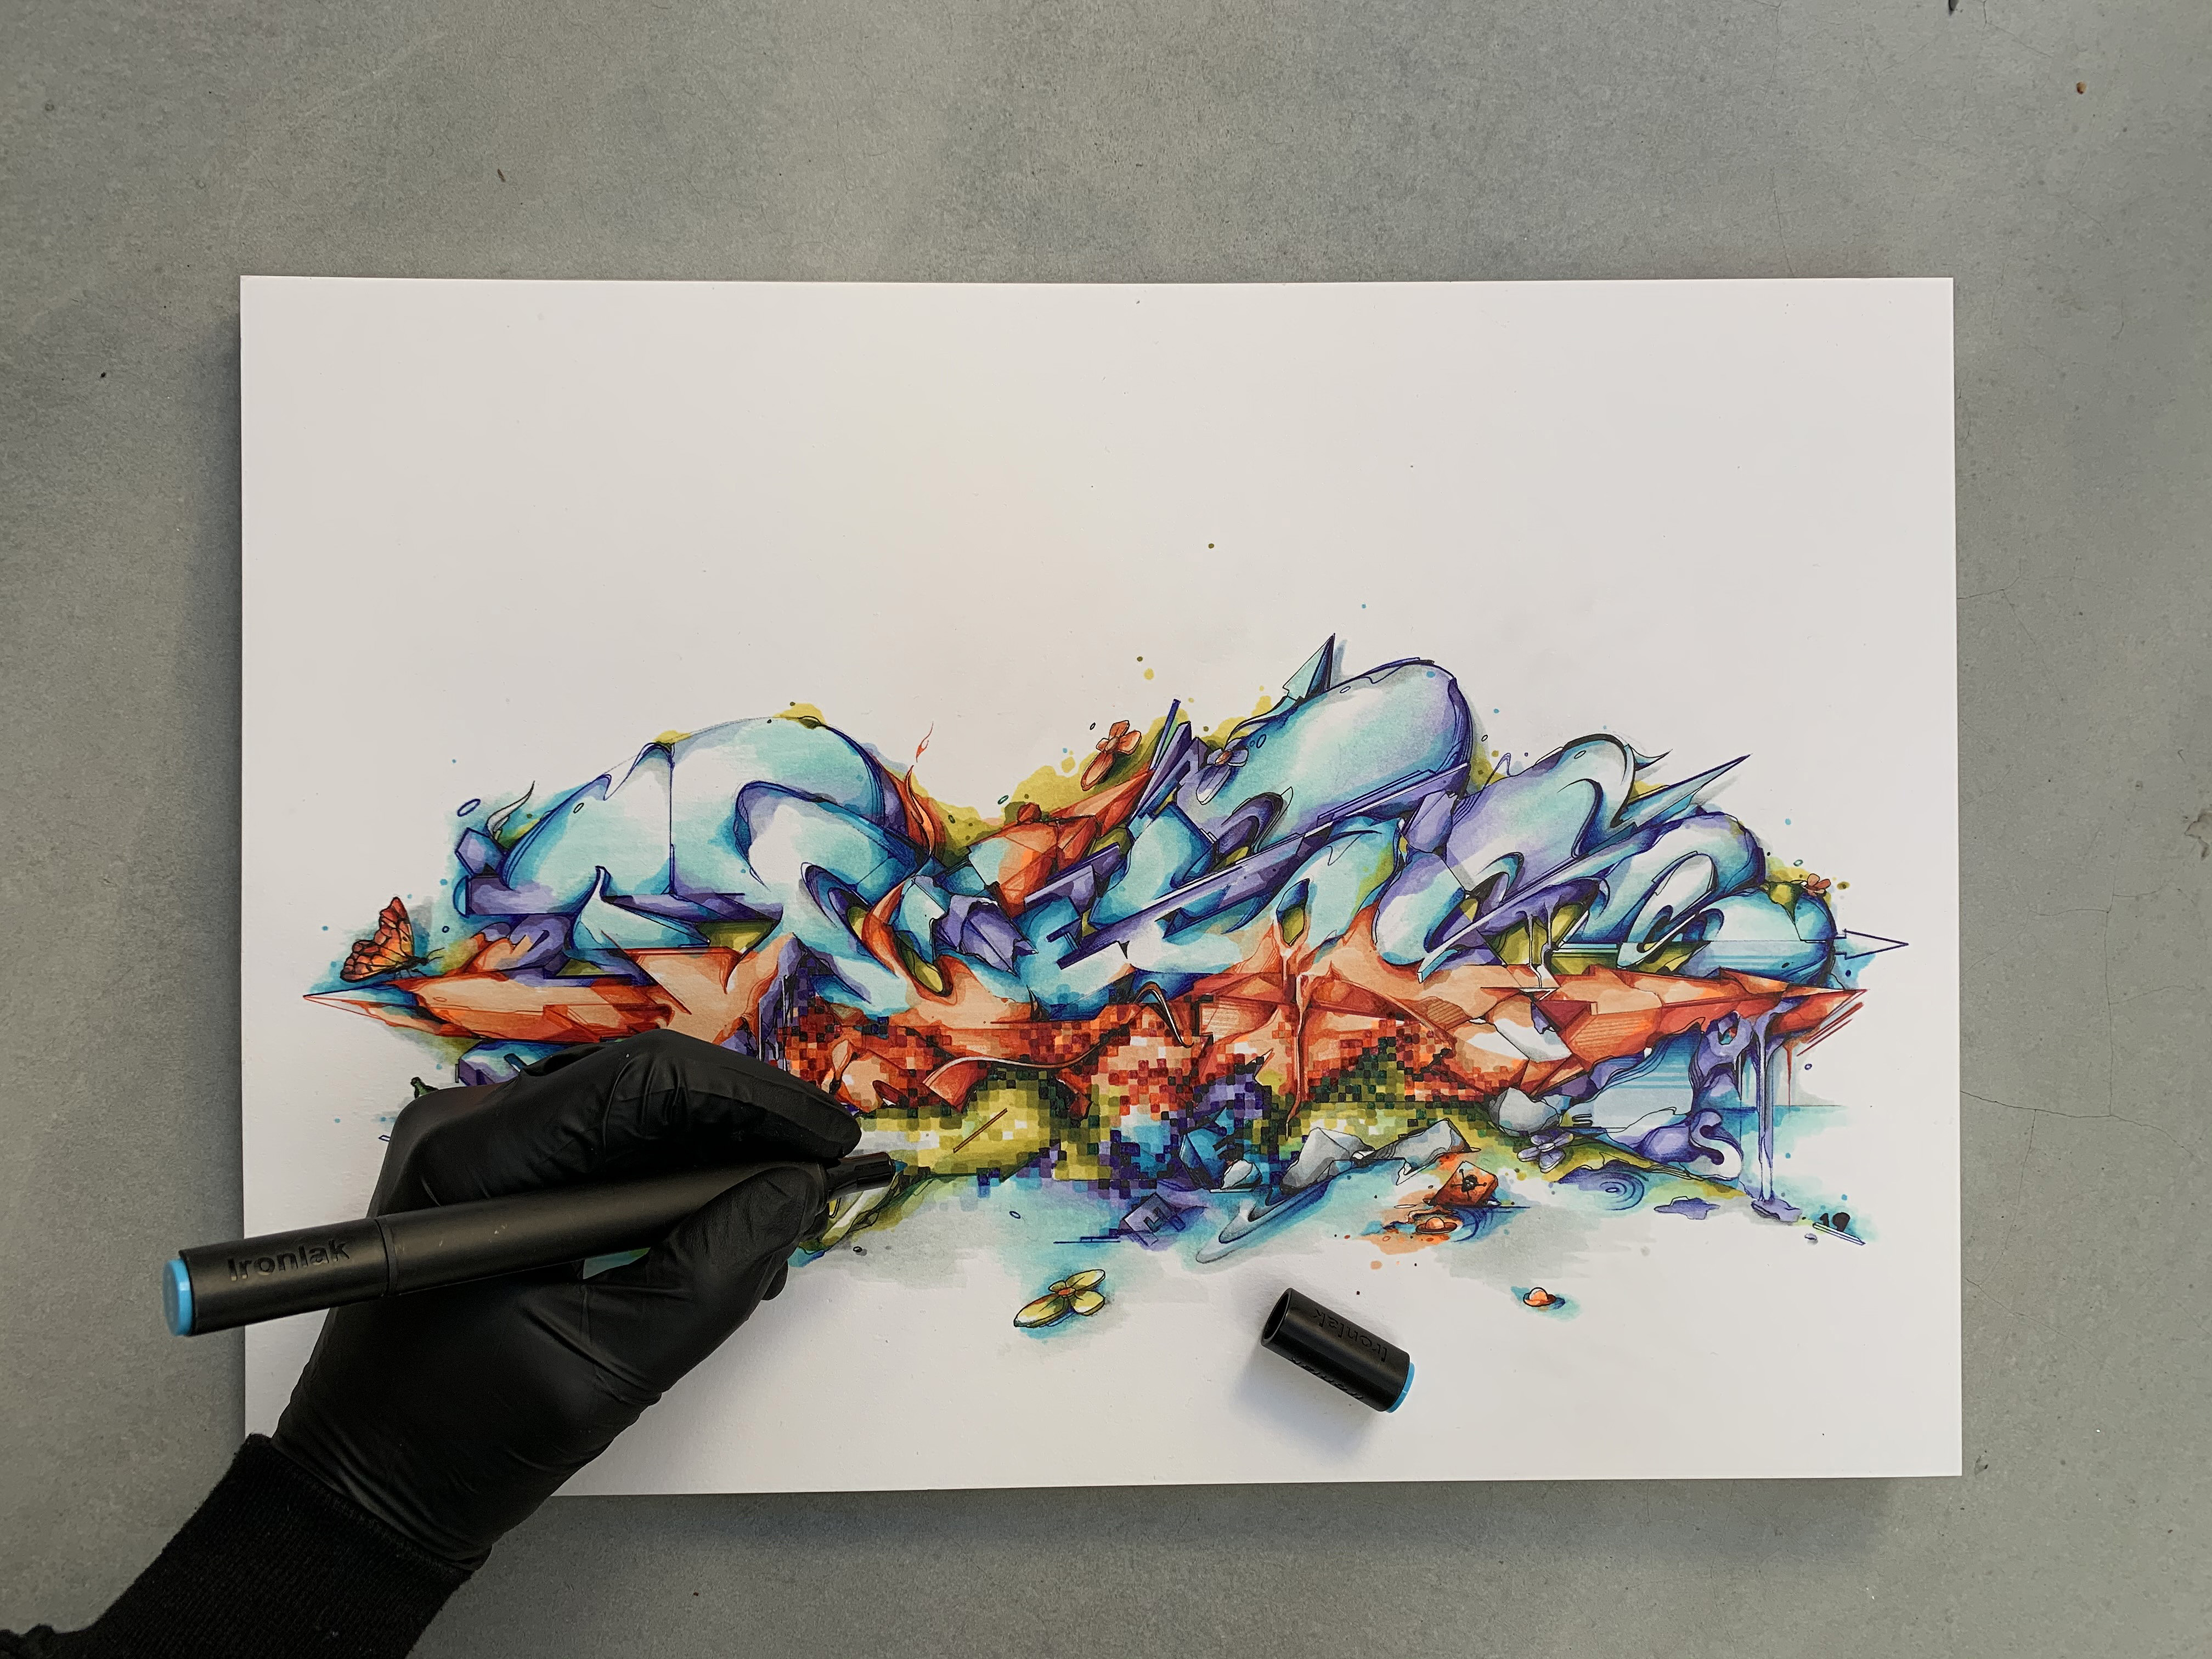 A work by Does - header 2